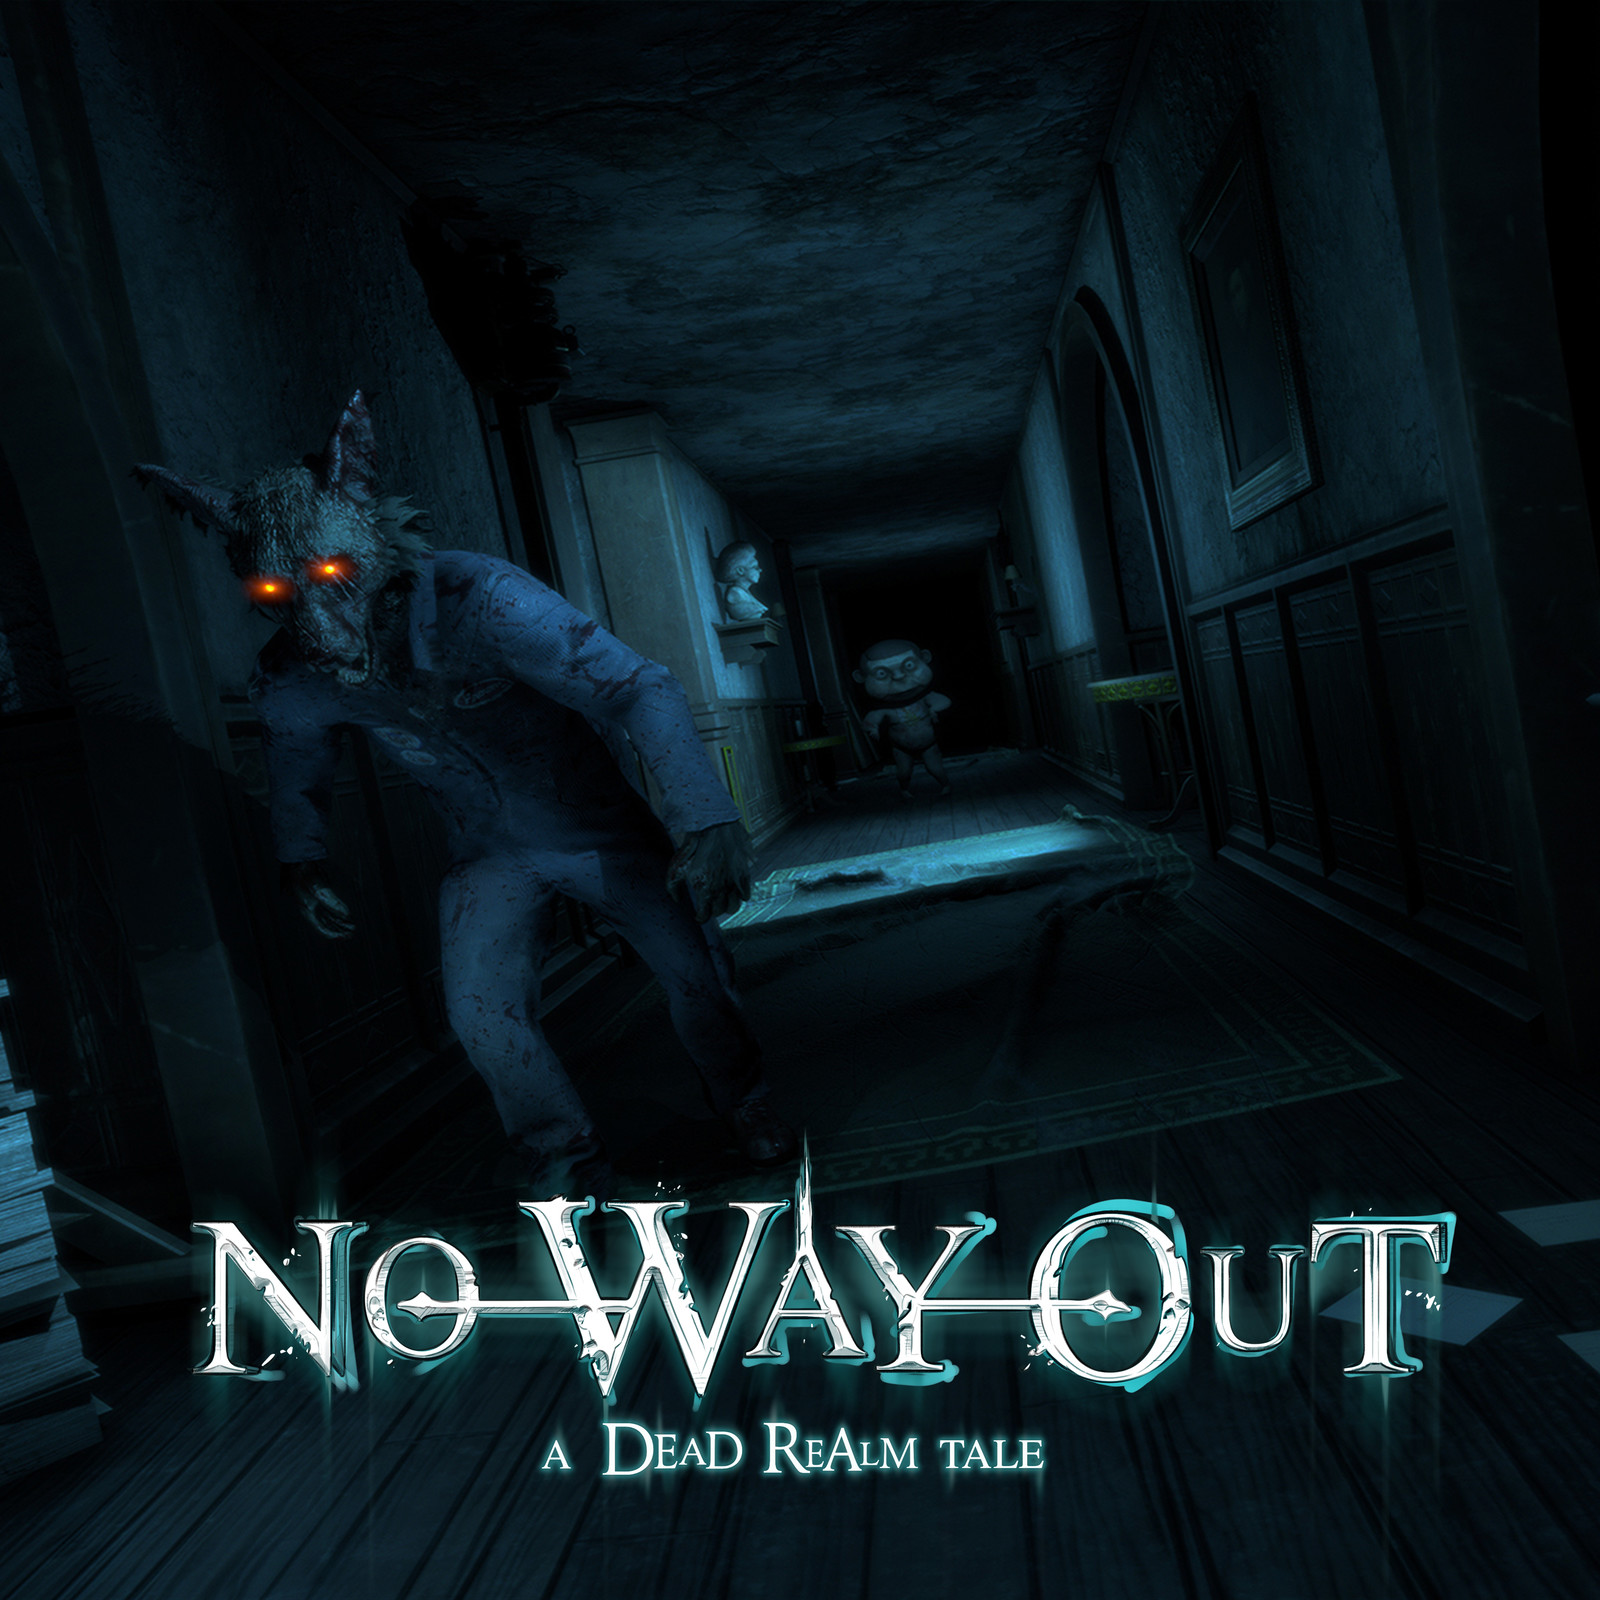 No Way Out - A Dead Realm Tale Screenshots